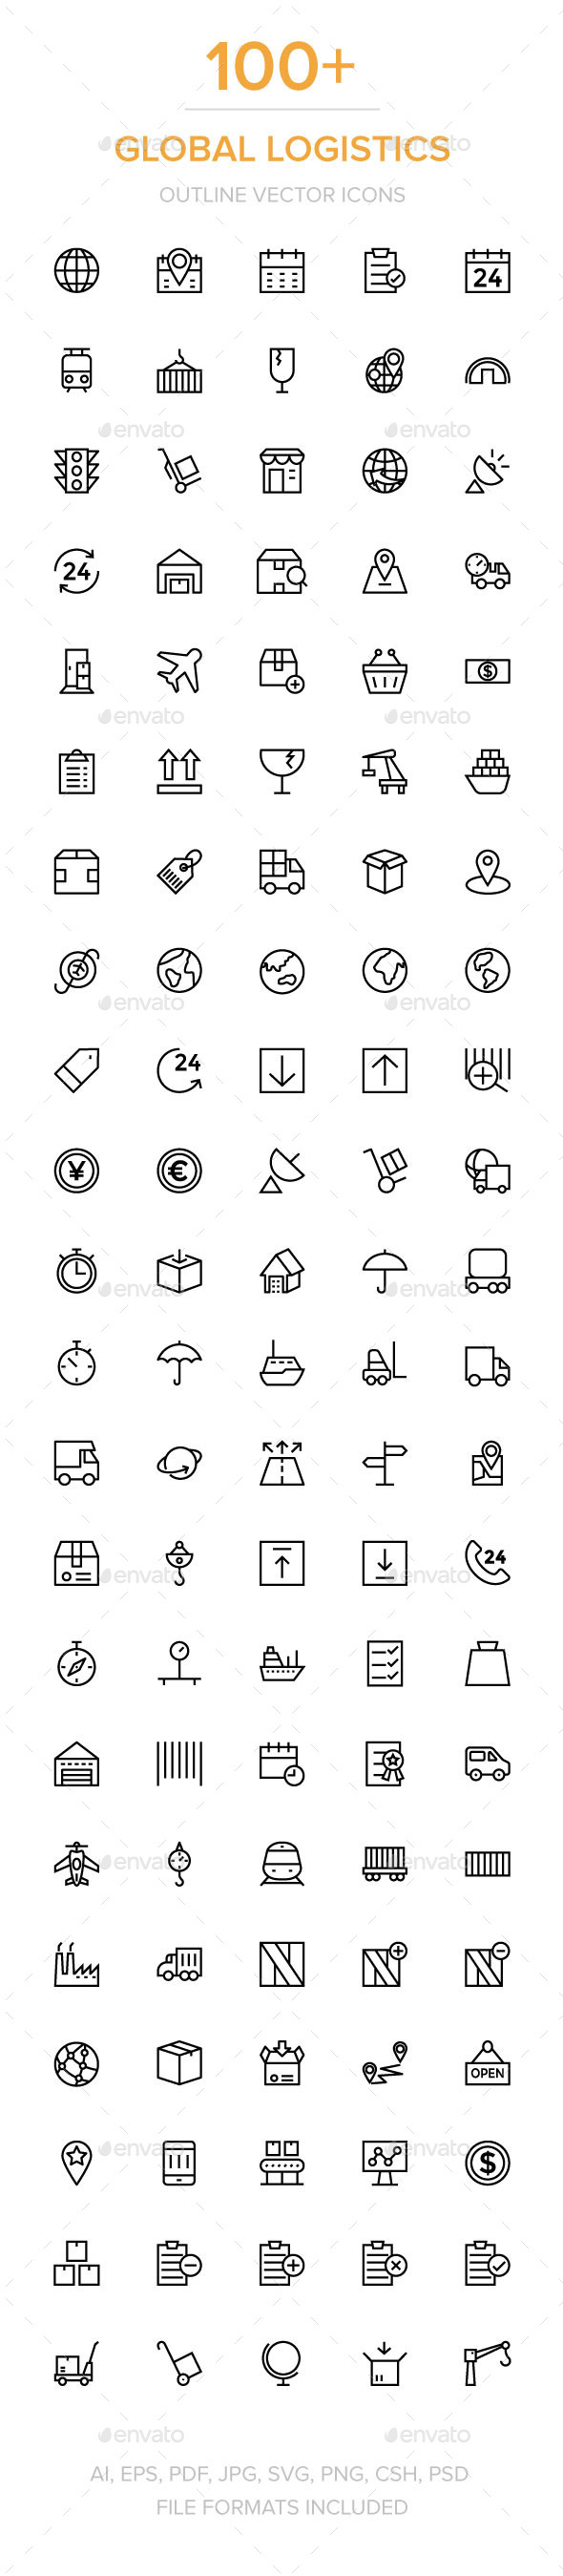 GraphicRiver 100& Global Logistics Vector Icons 11930006